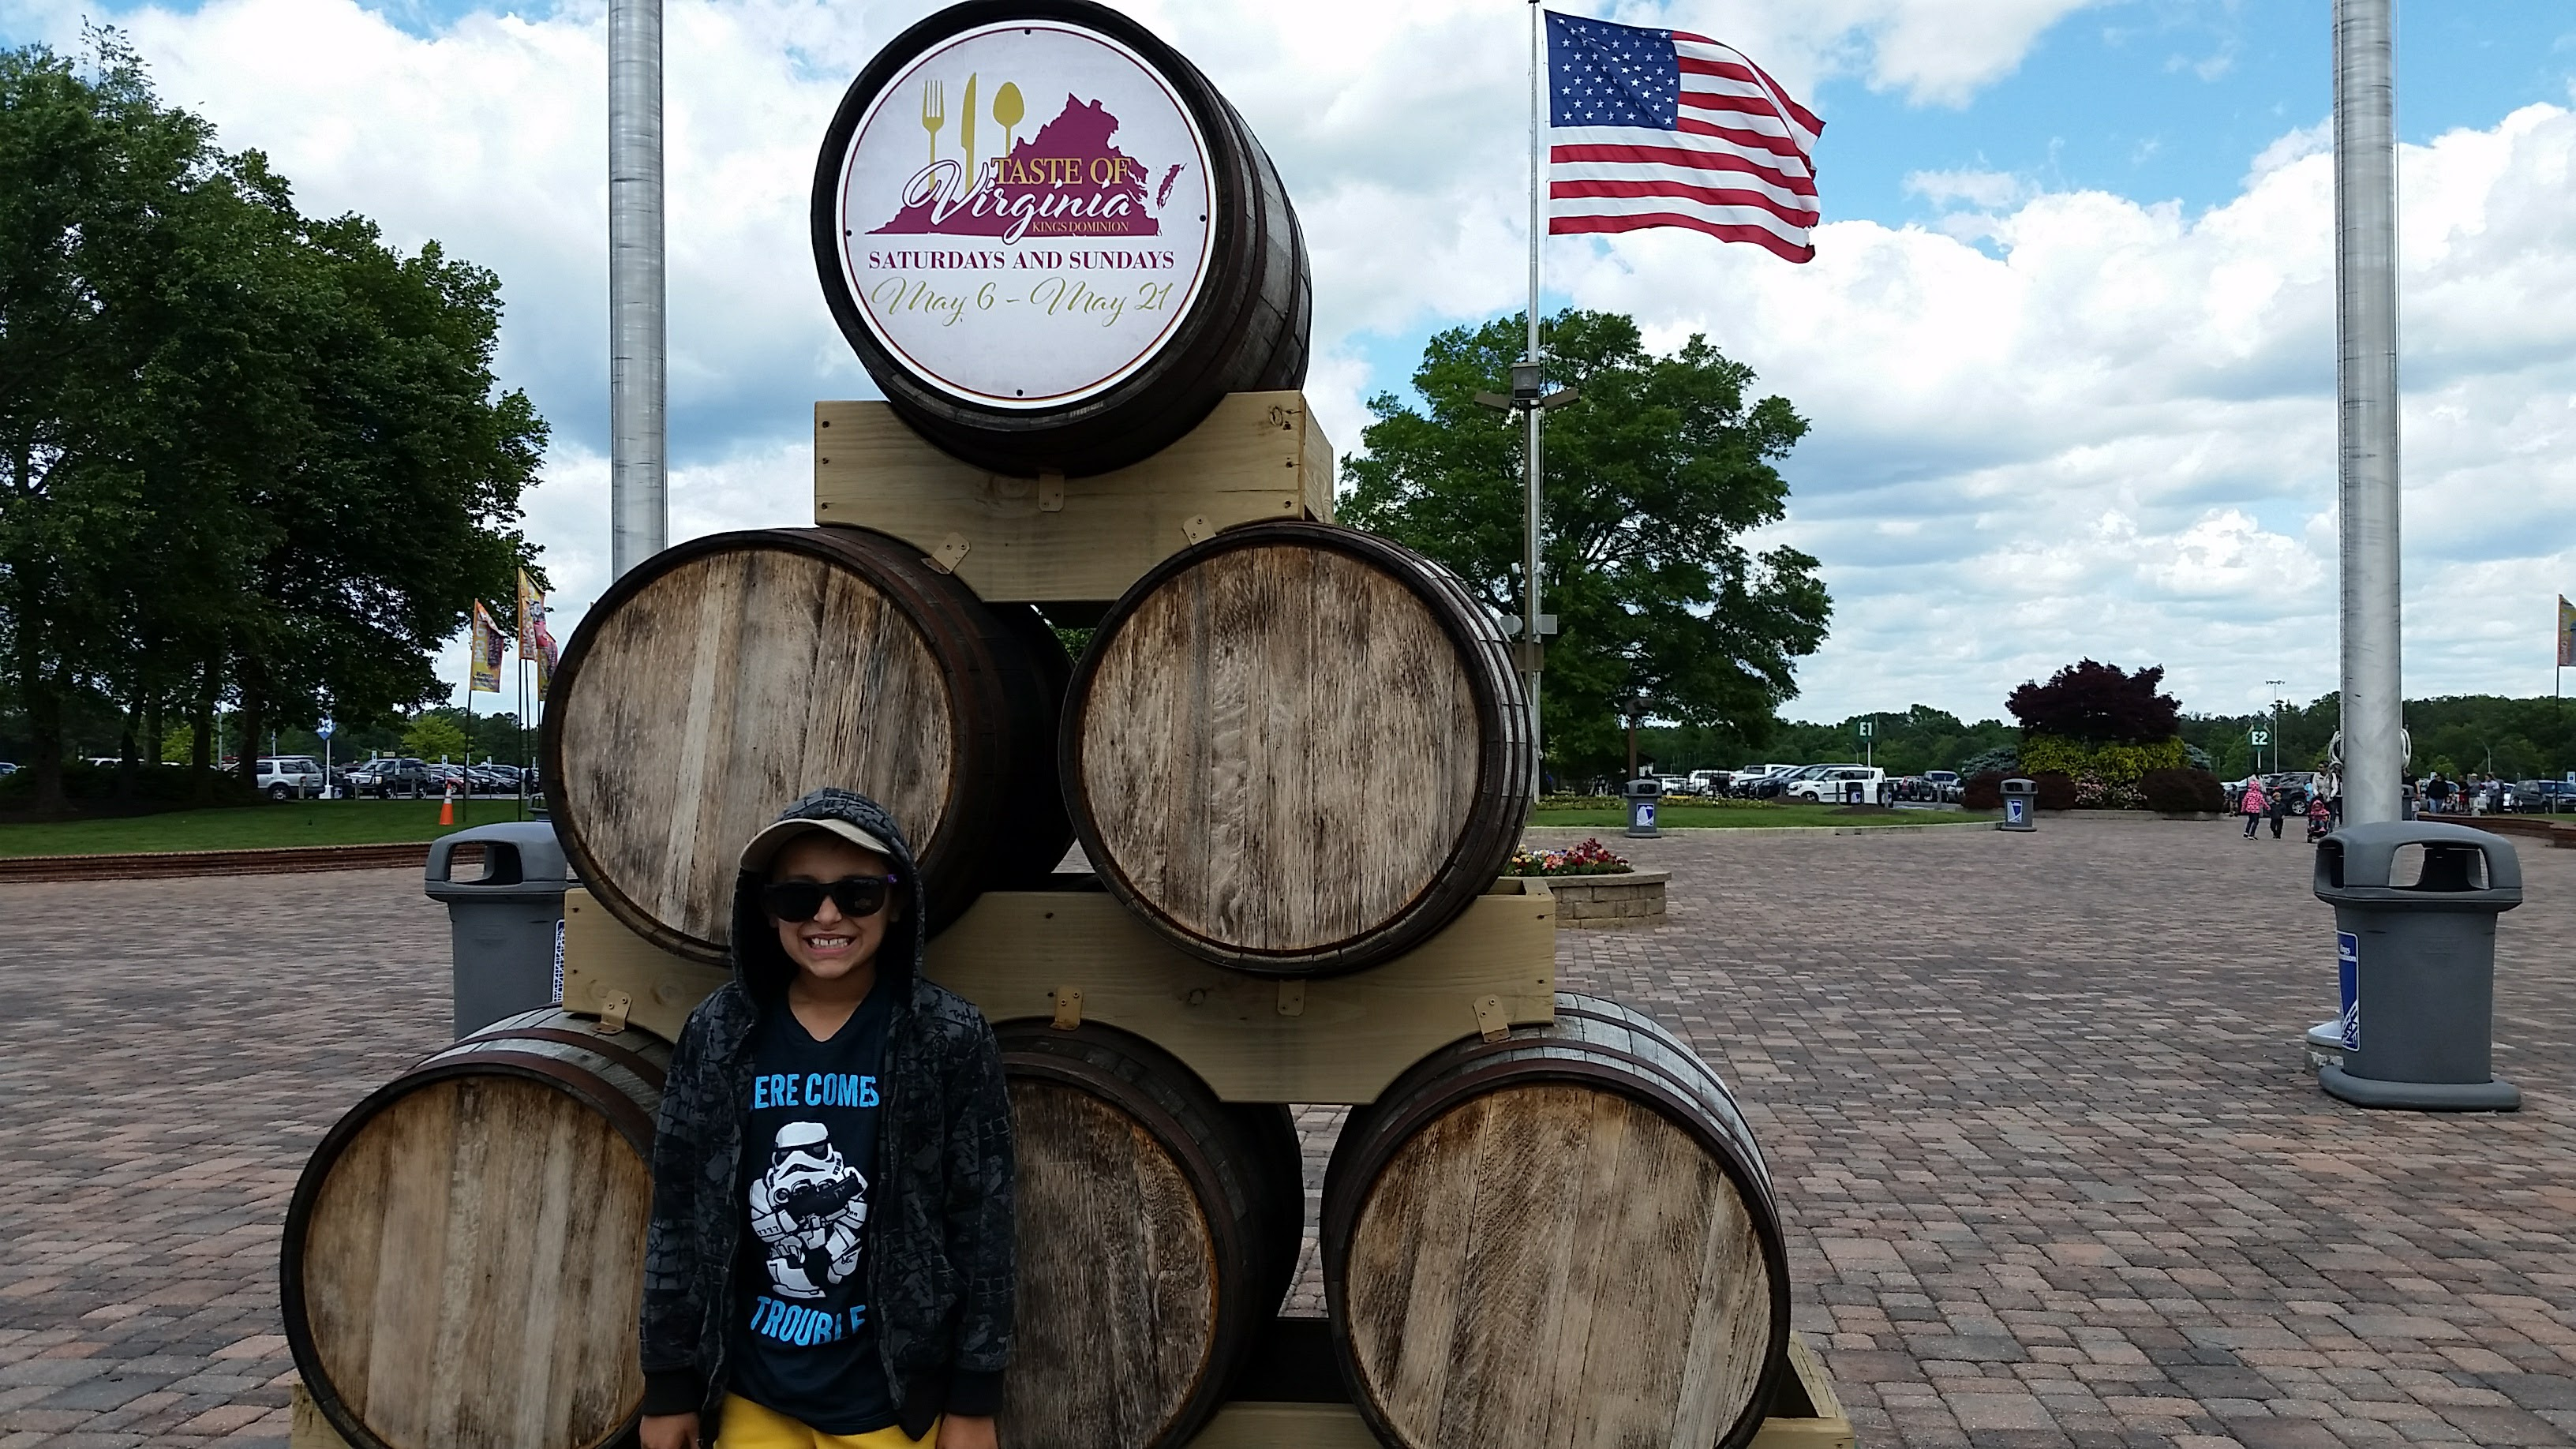 Young boy standing in front of wine or whiskey barrels with Taste of Virginia Kings Dominion signs